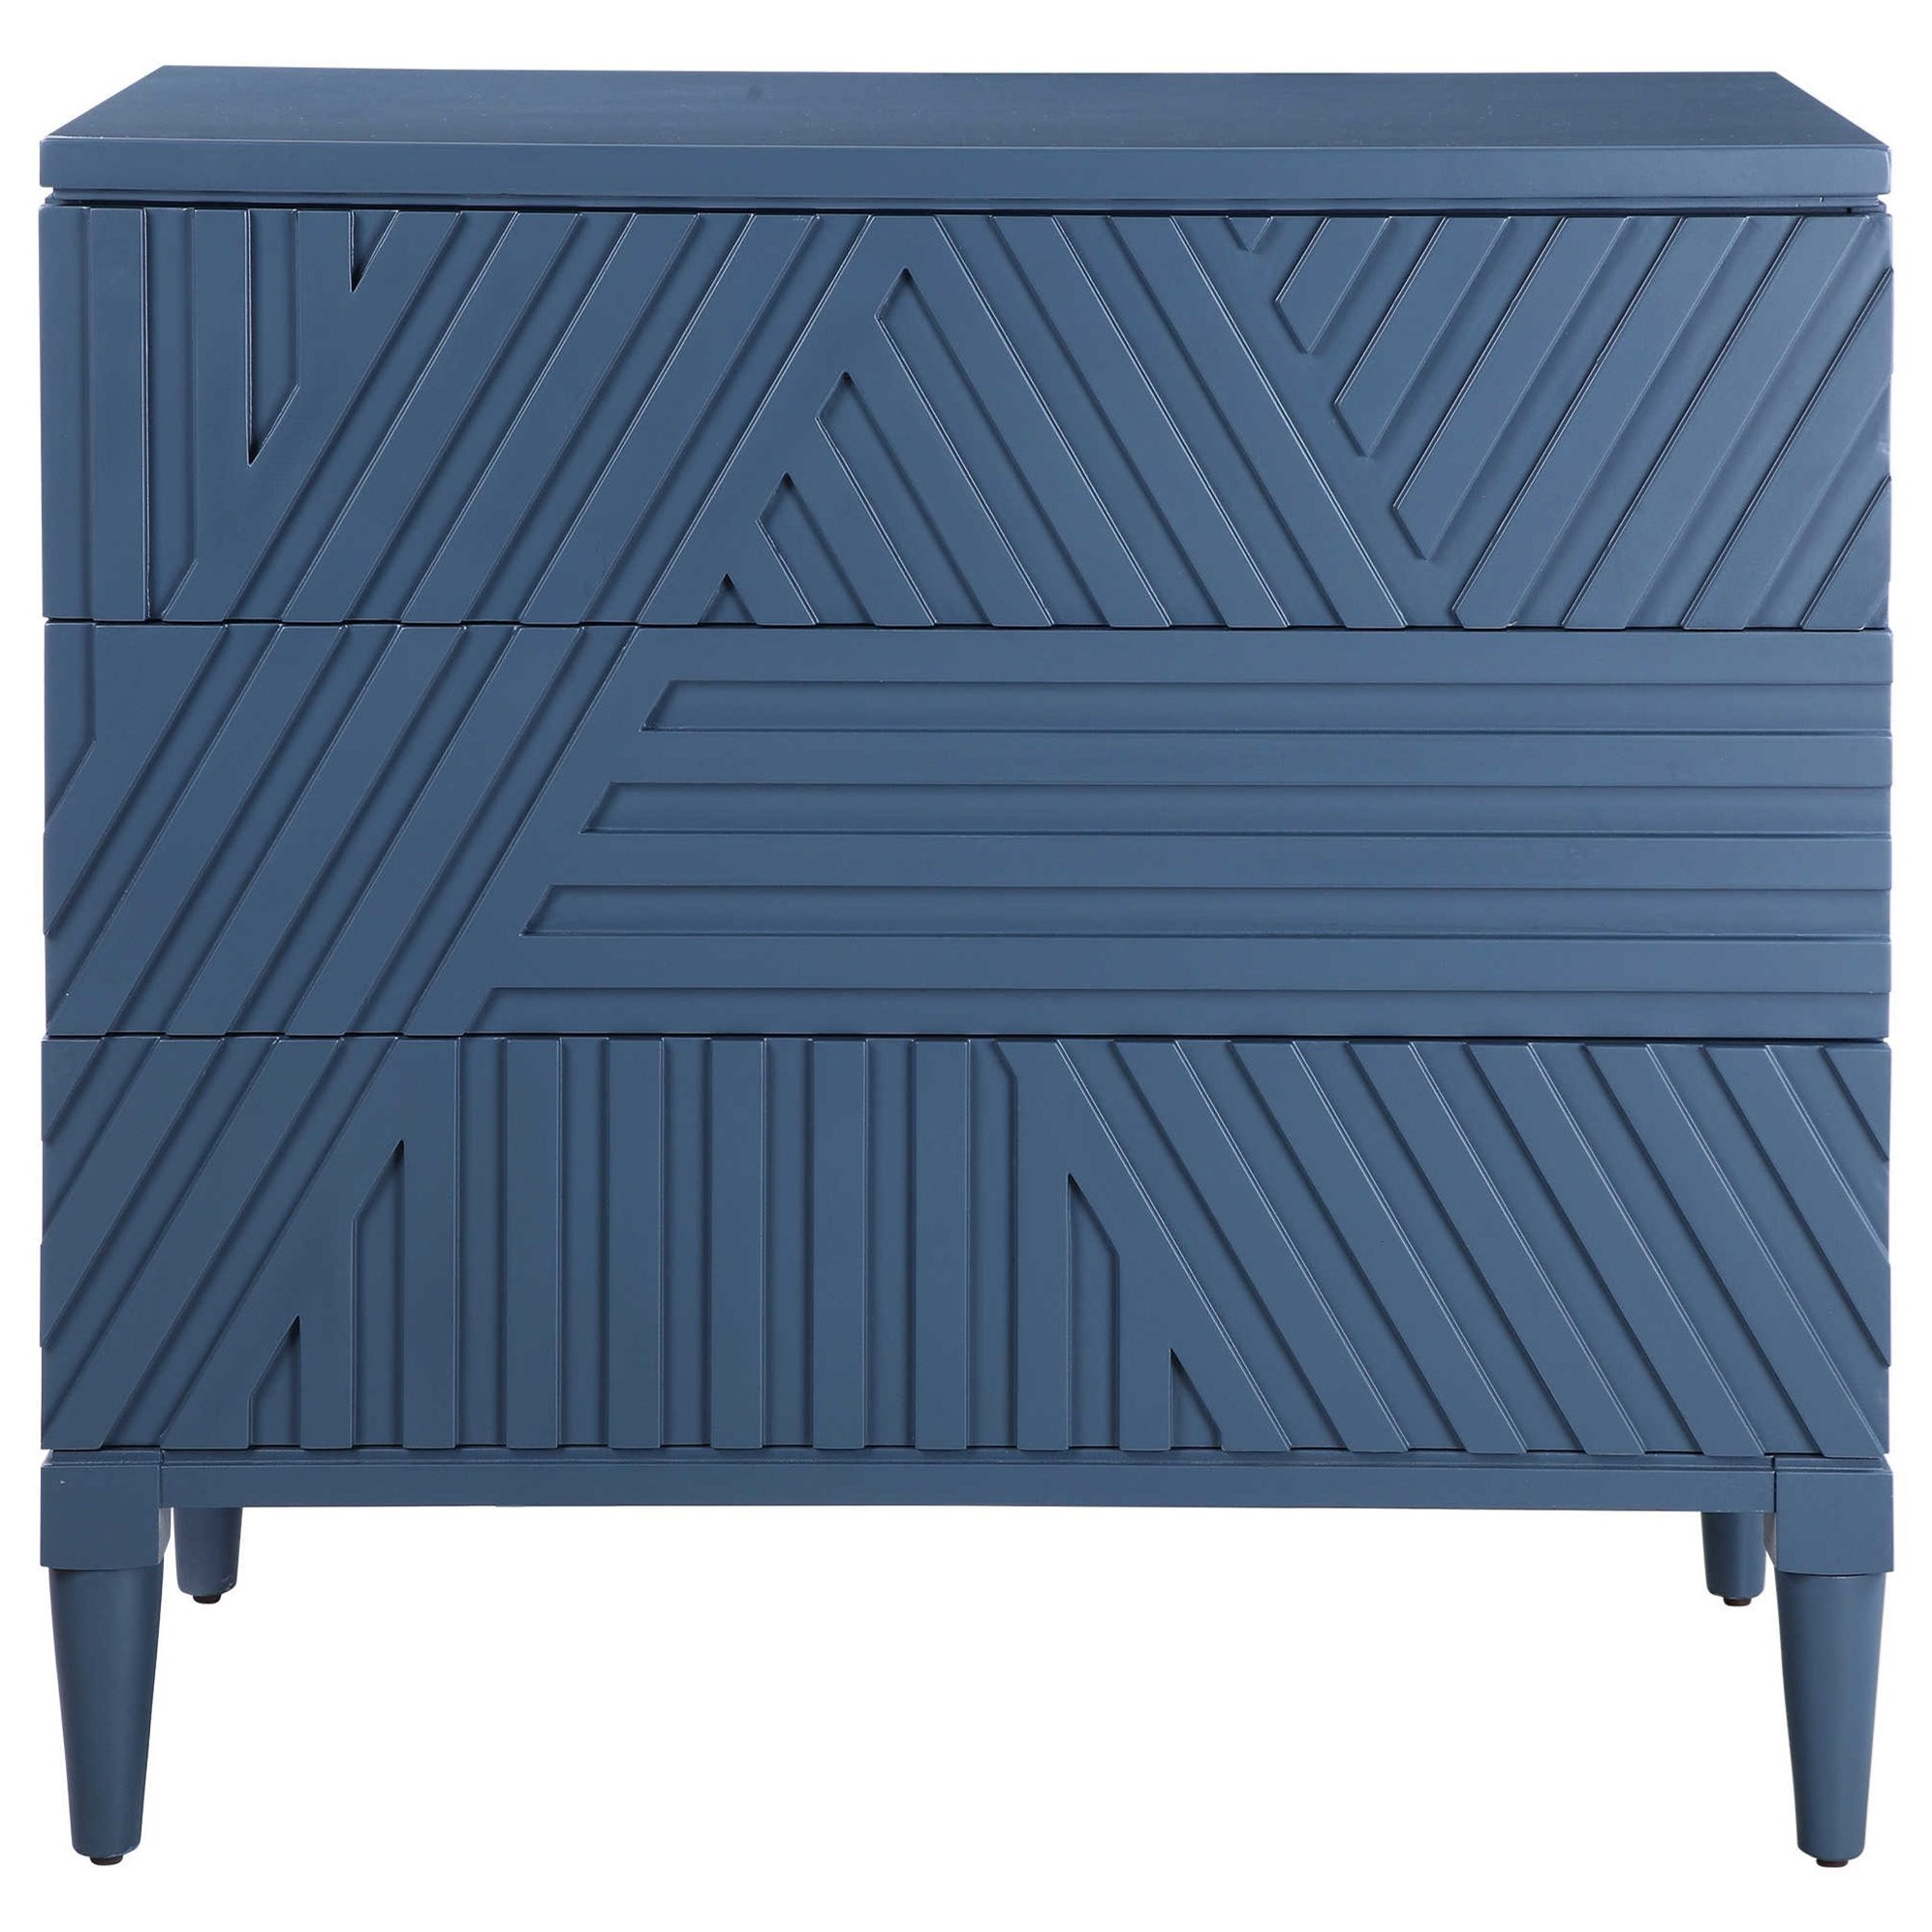 Accent Furniture - Chests Colby Blue Drawer Chest by Uttermost at Mueller Furniture